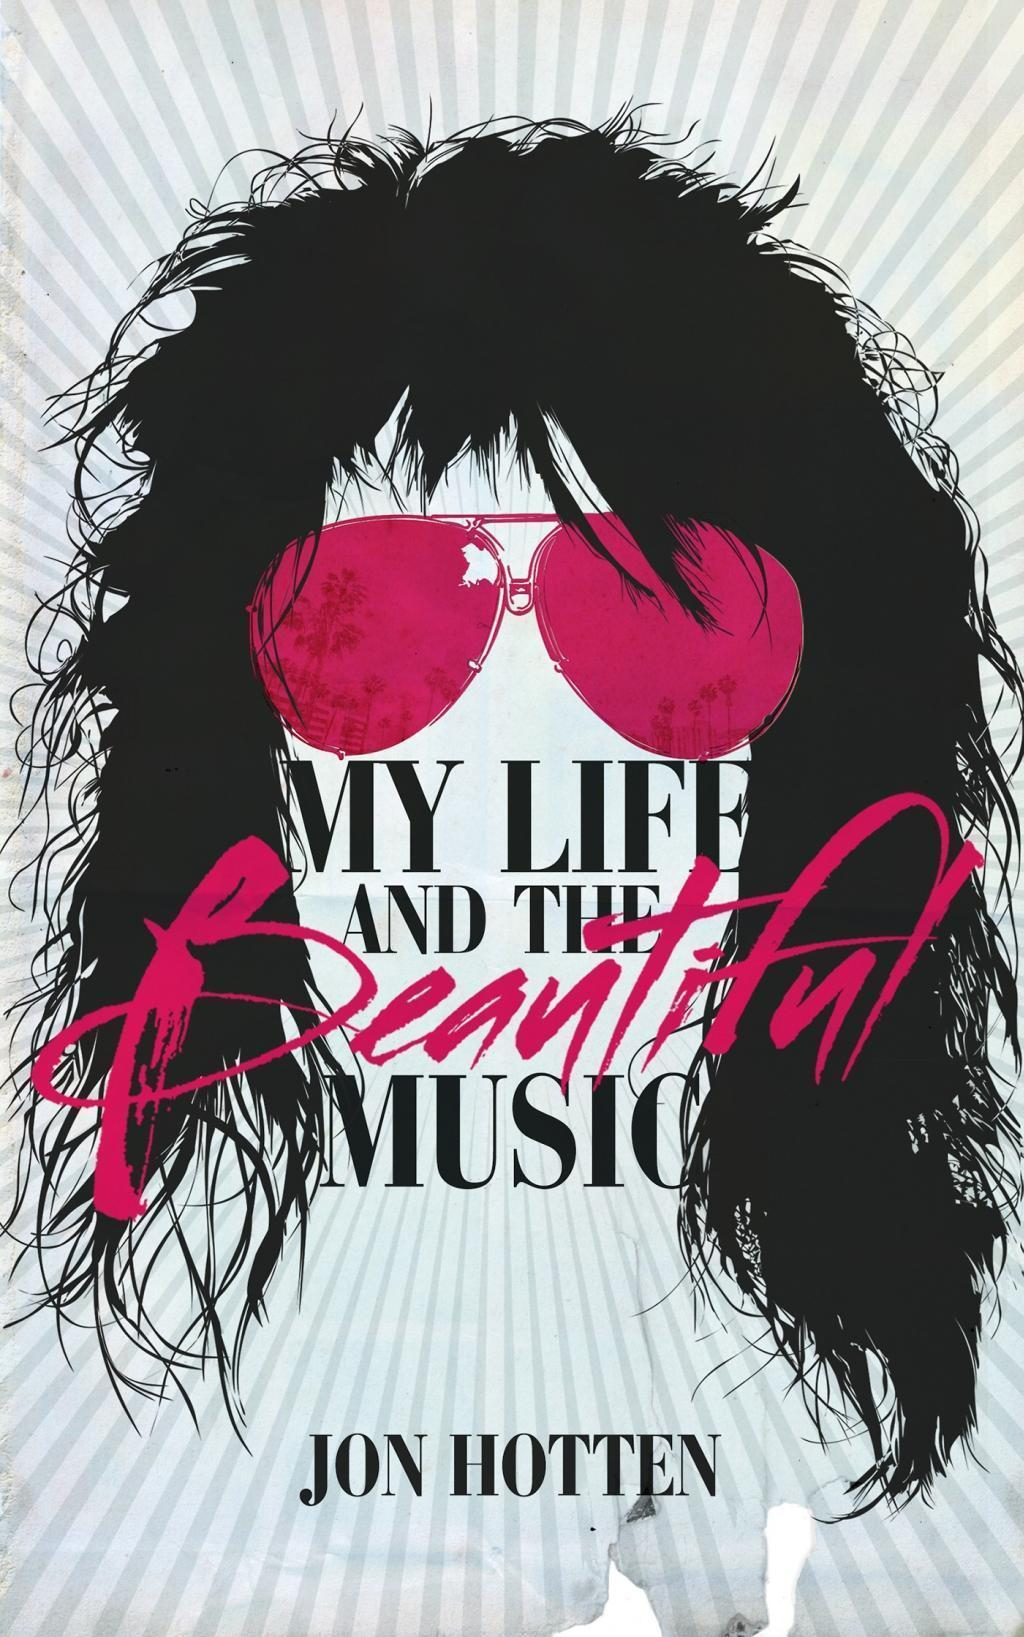 My Life And The Beautiful Music